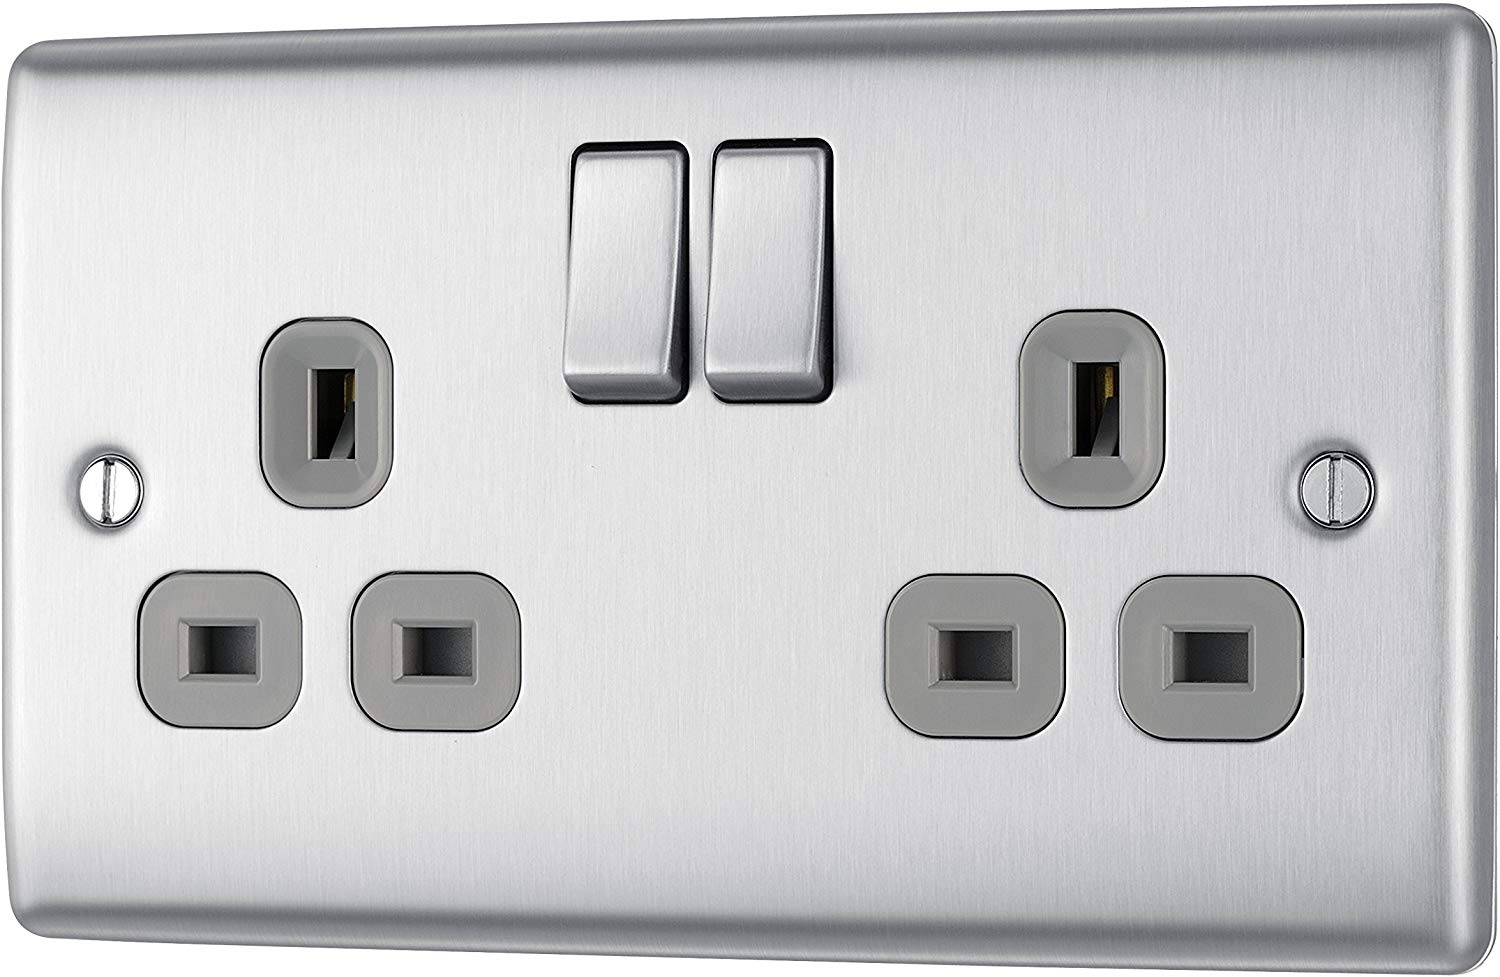 BG Electrical nbs22g Double Metal Brushed Steel Switched Power Socket £5.57 Prime + 4.49 Non Prime